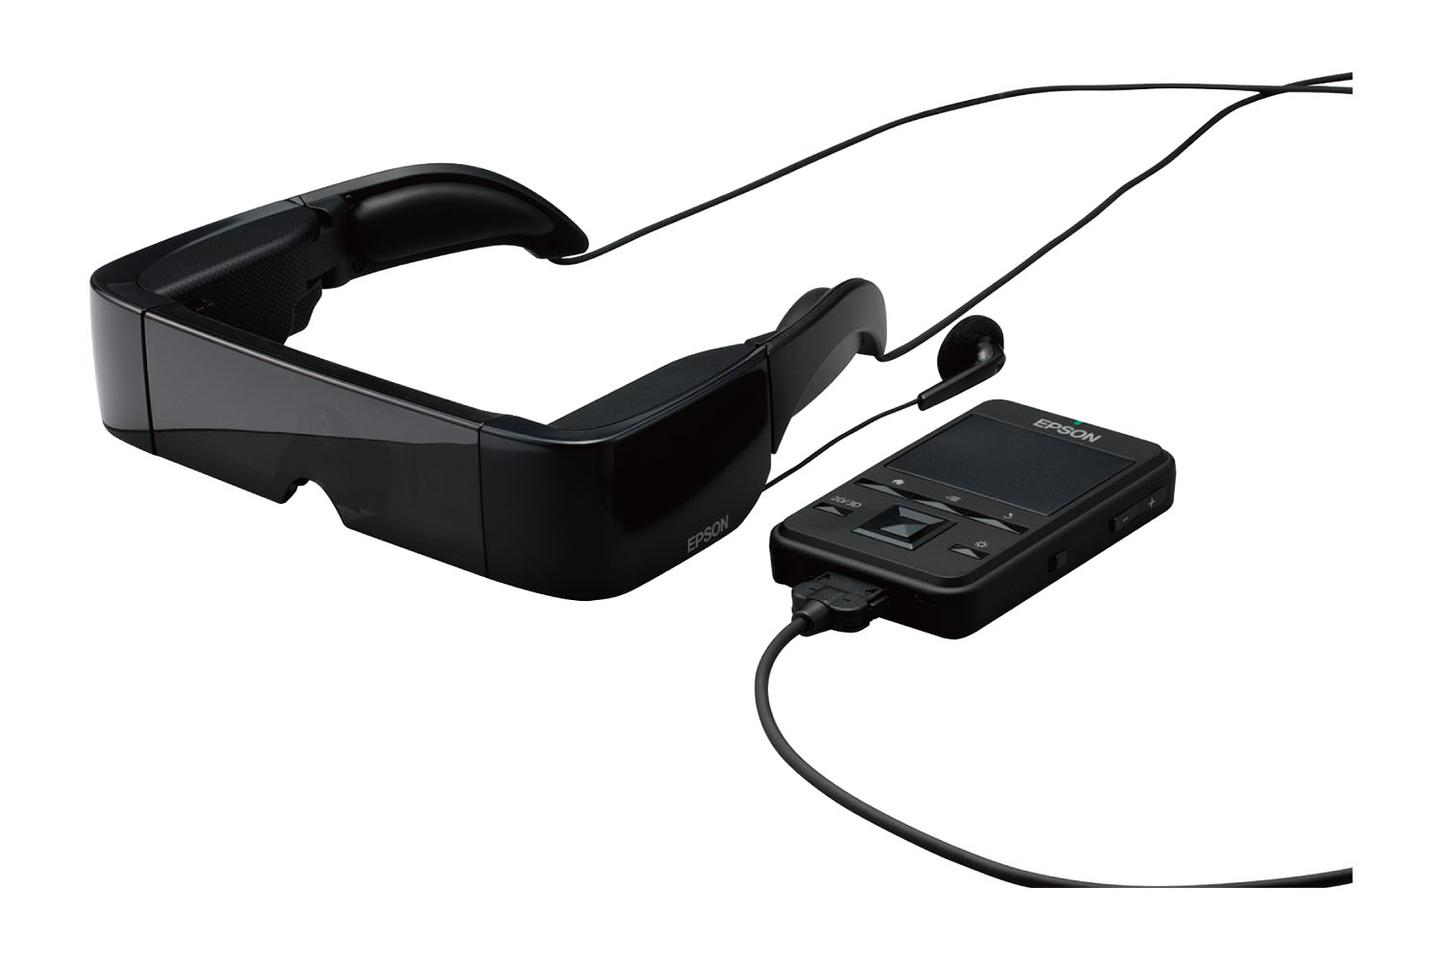 A thin cable connects a smartphone-sized, touch-enabled trackpad controller powered by Android 2.2 to the head gear